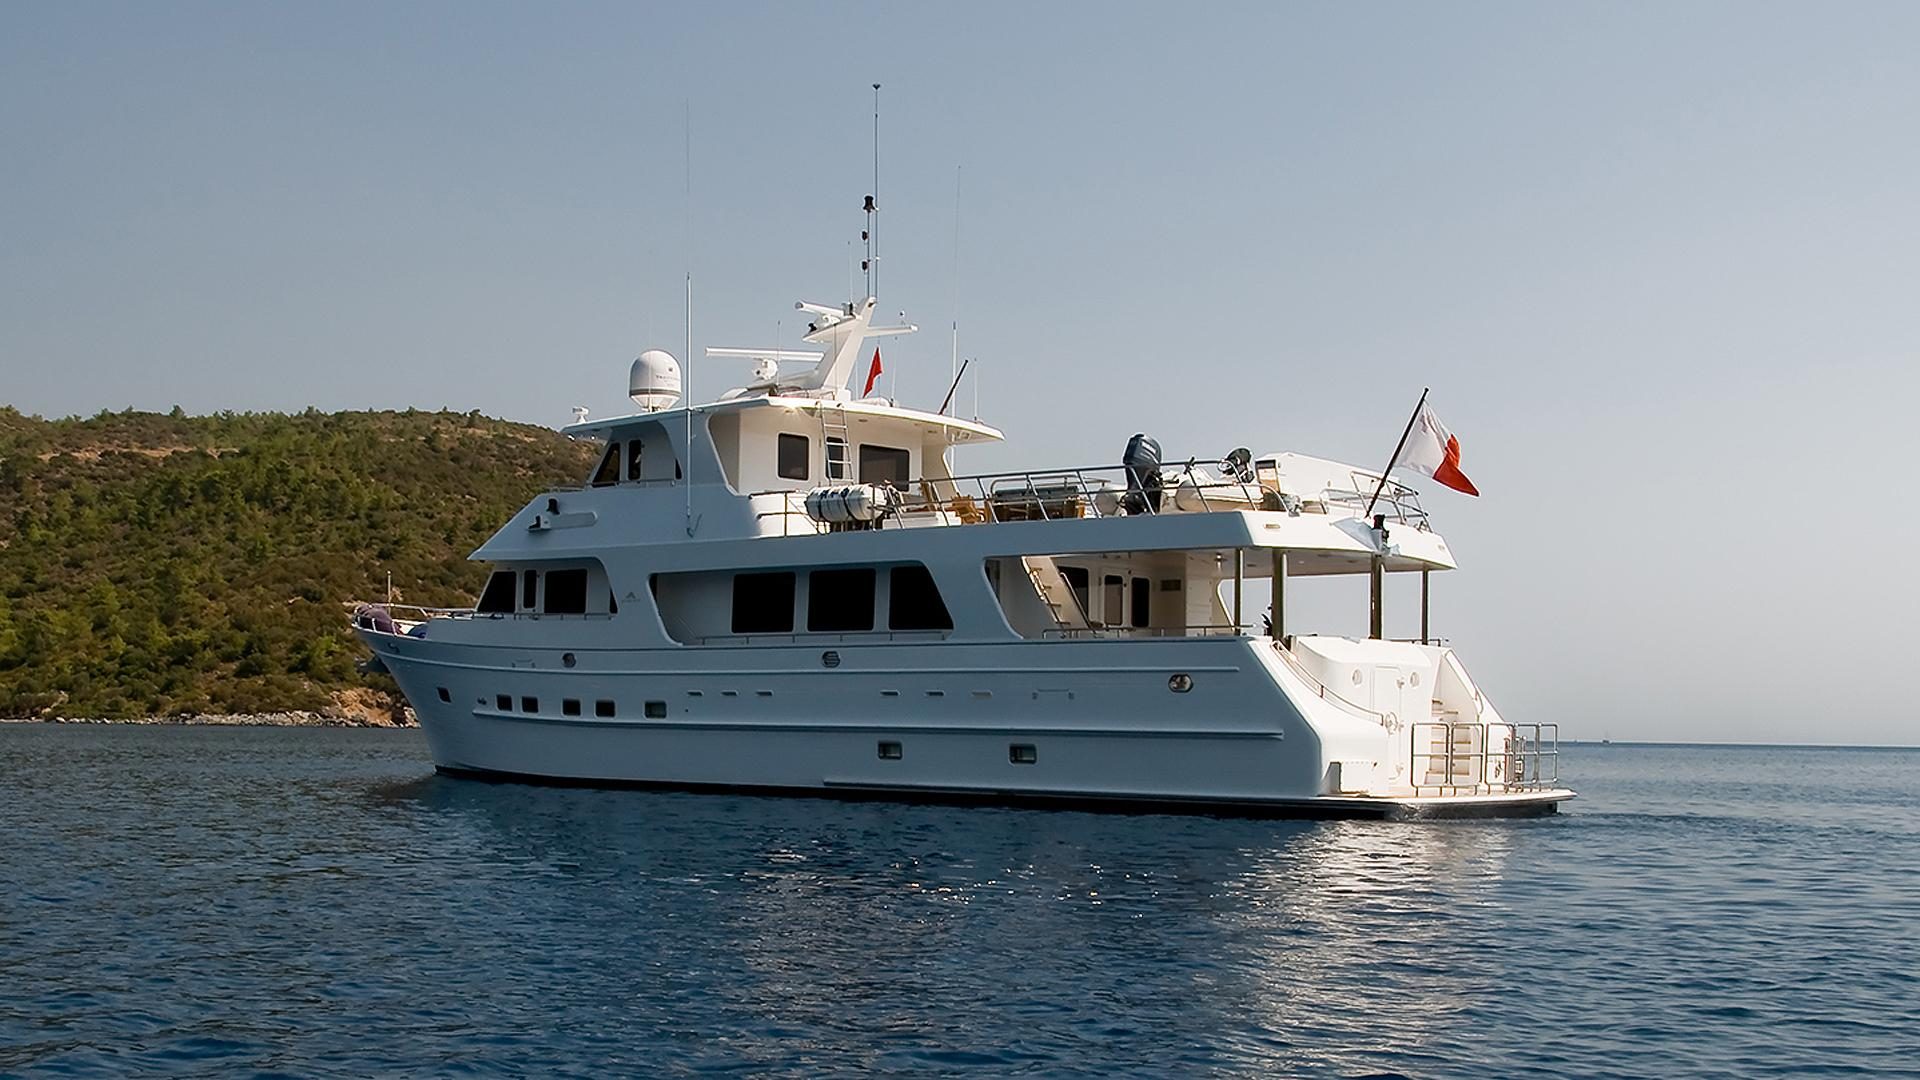 bey motoryacht outer reef yachts 2010 26m half stern